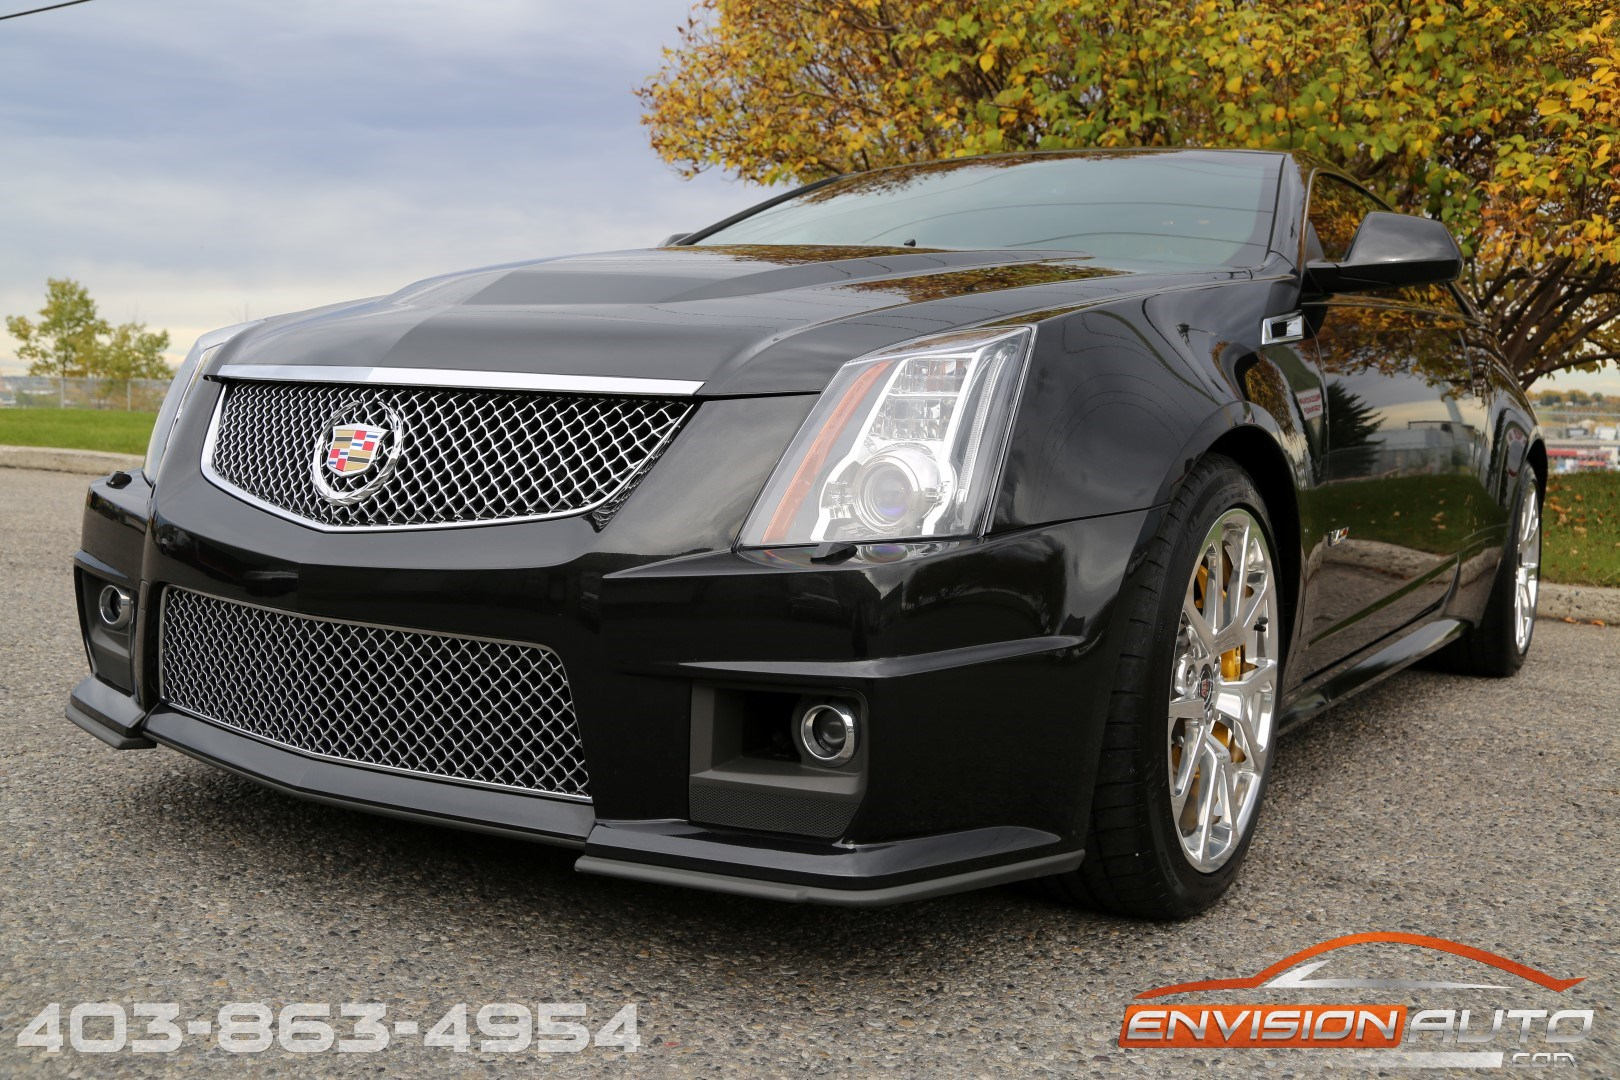 2012 cadillac cts v coupe recaro seats 1 local owner envision auto. Black Bedroom Furniture Sets. Home Design Ideas